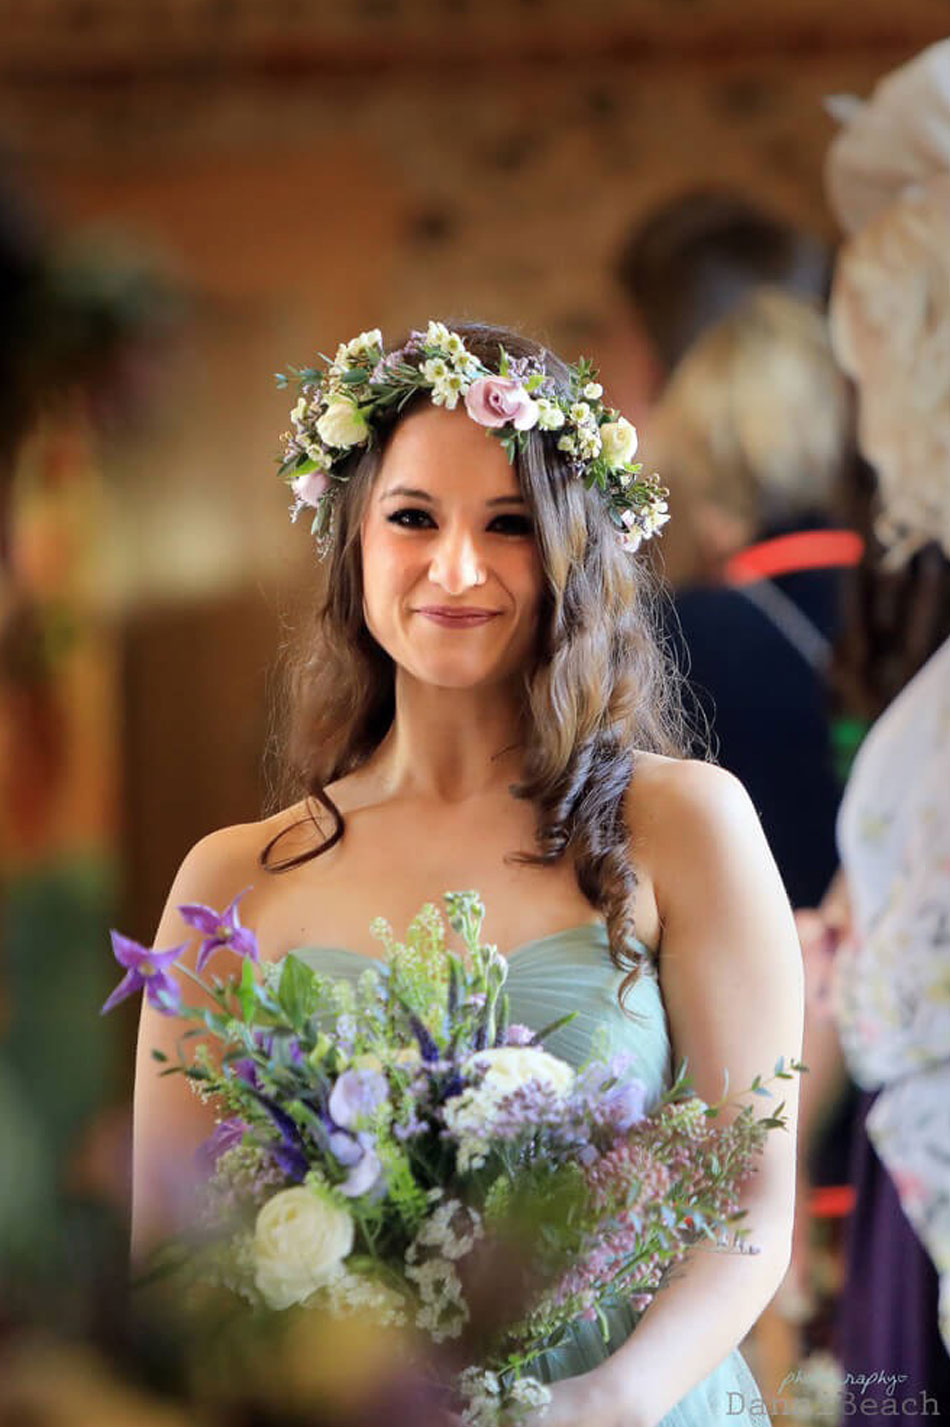 Bride on her wedding day at Upwaltham Barns